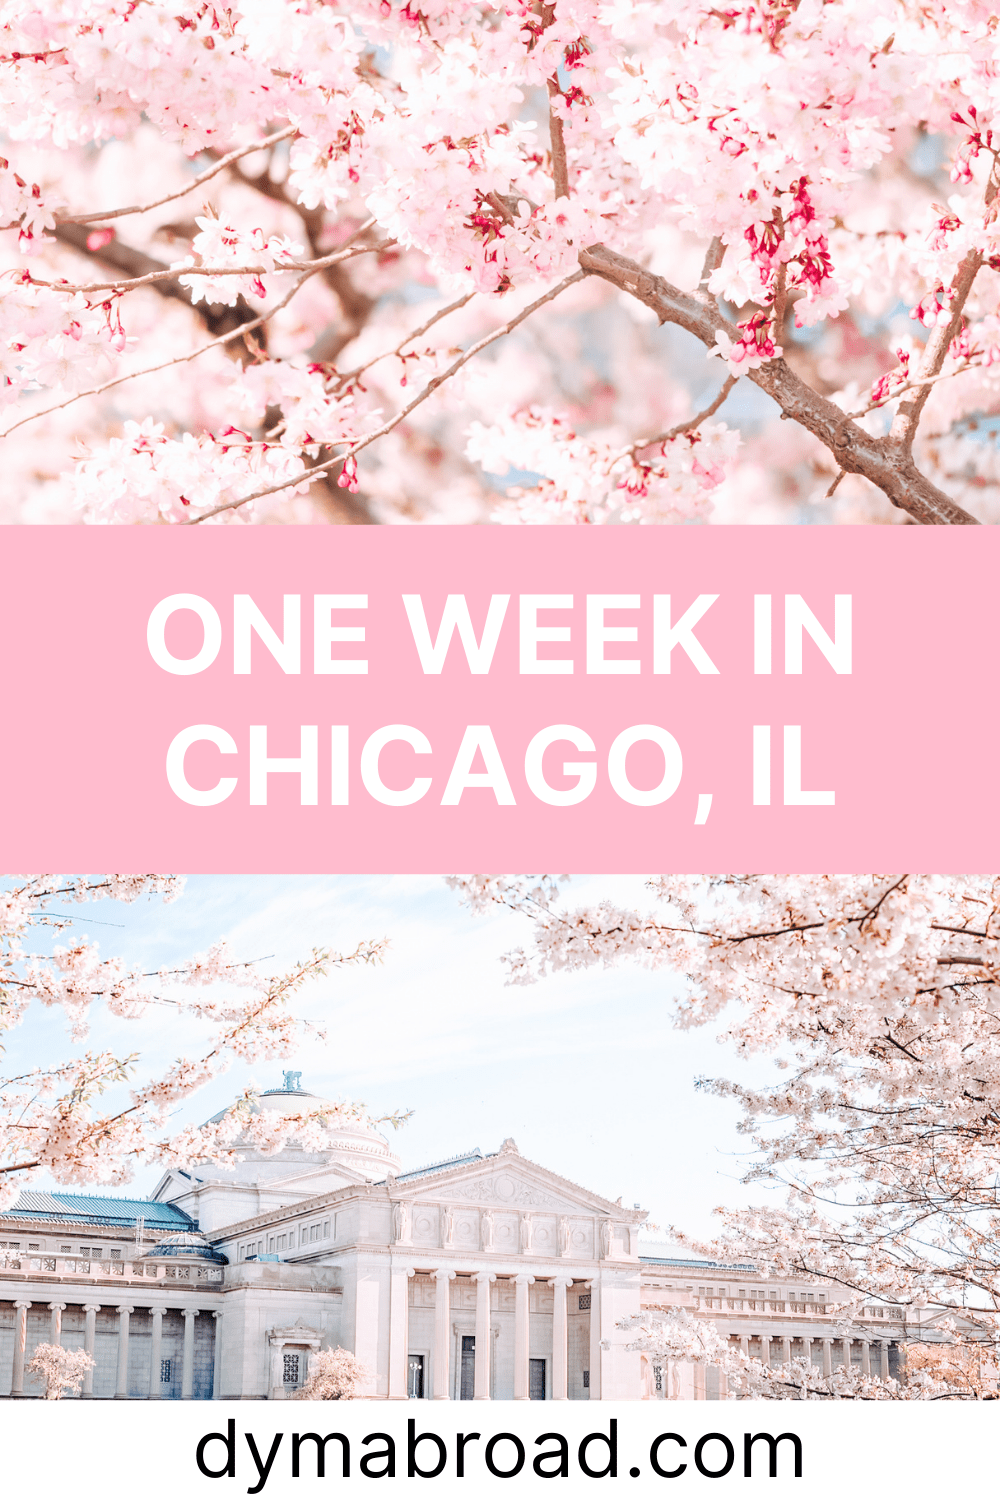 One week in Chicago Pinterest image